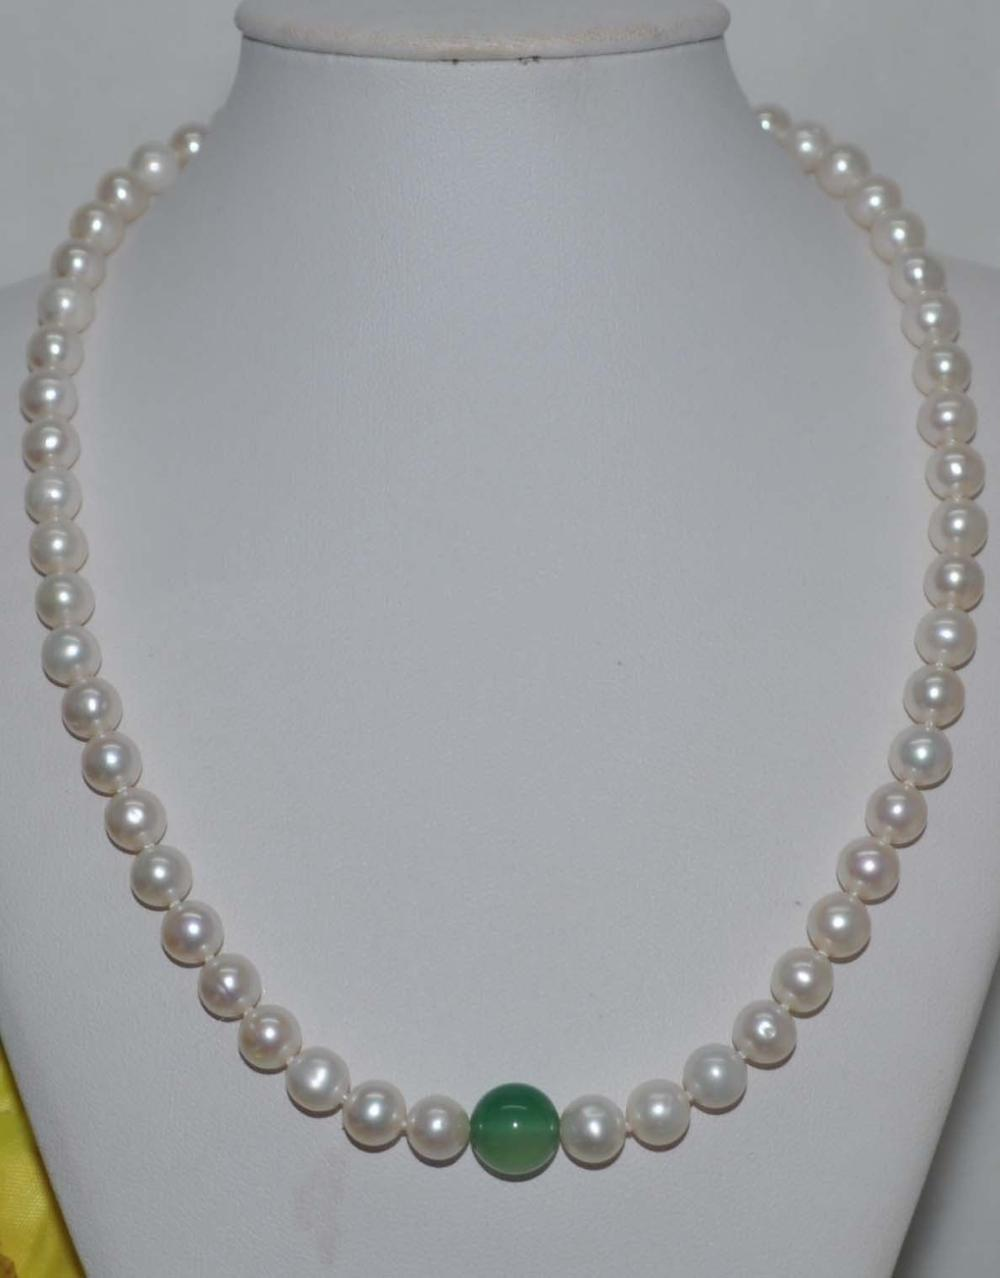 9-10mm Genuine White South Sea Green Jade Pearl Necklace 14k/20 Yellow Gold Clasp q&q часы q&q vq50j006 коллекция кварцевые